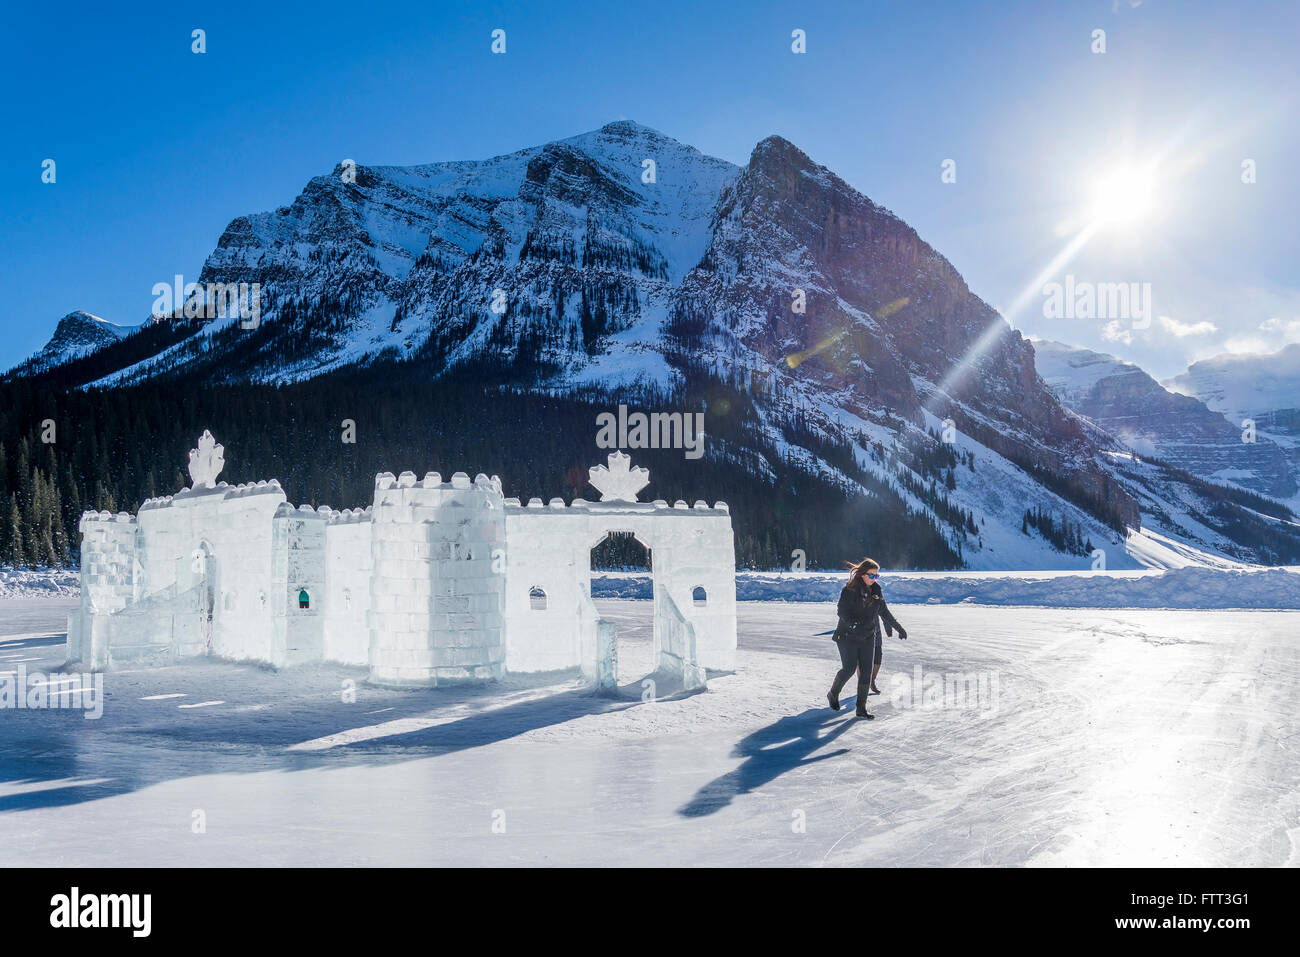 Ice Castle, Lake Louise in winter, Banff National Park, Alberta, Canada - Stock Image